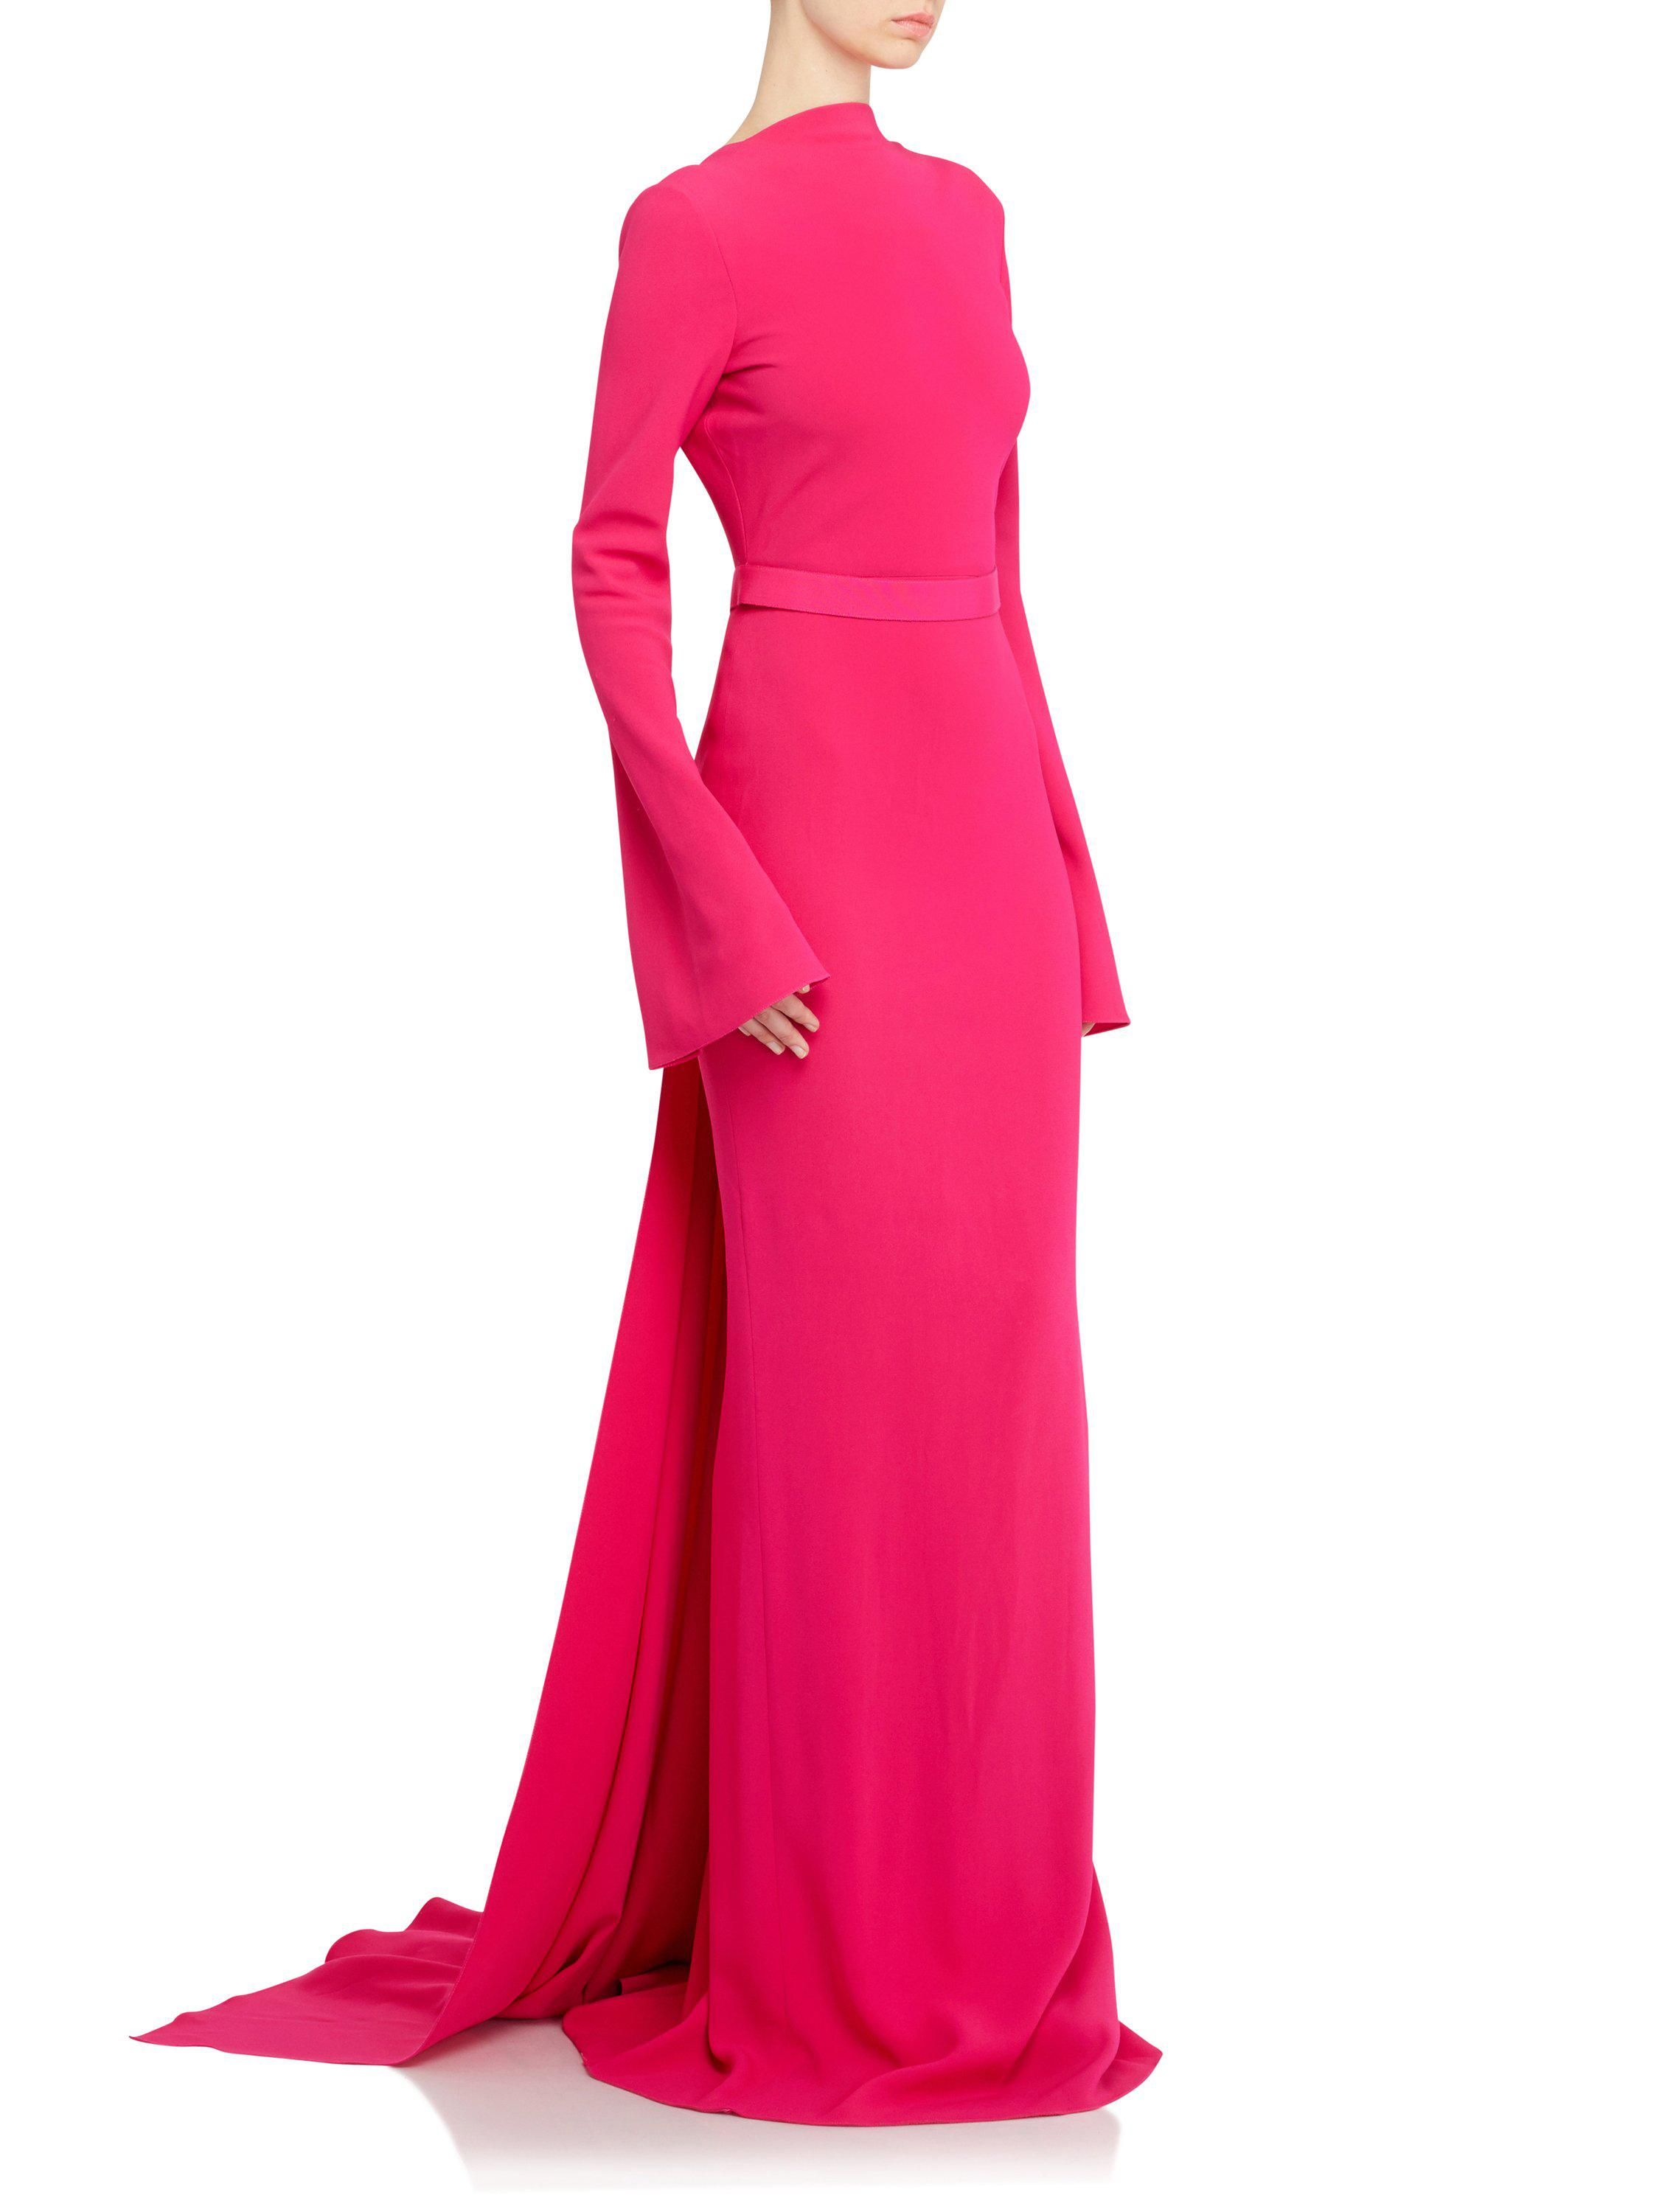 3c14795af76a8 Brandon Maxwell Waterfall Back Gown In Fuscia in Pink - Lyst